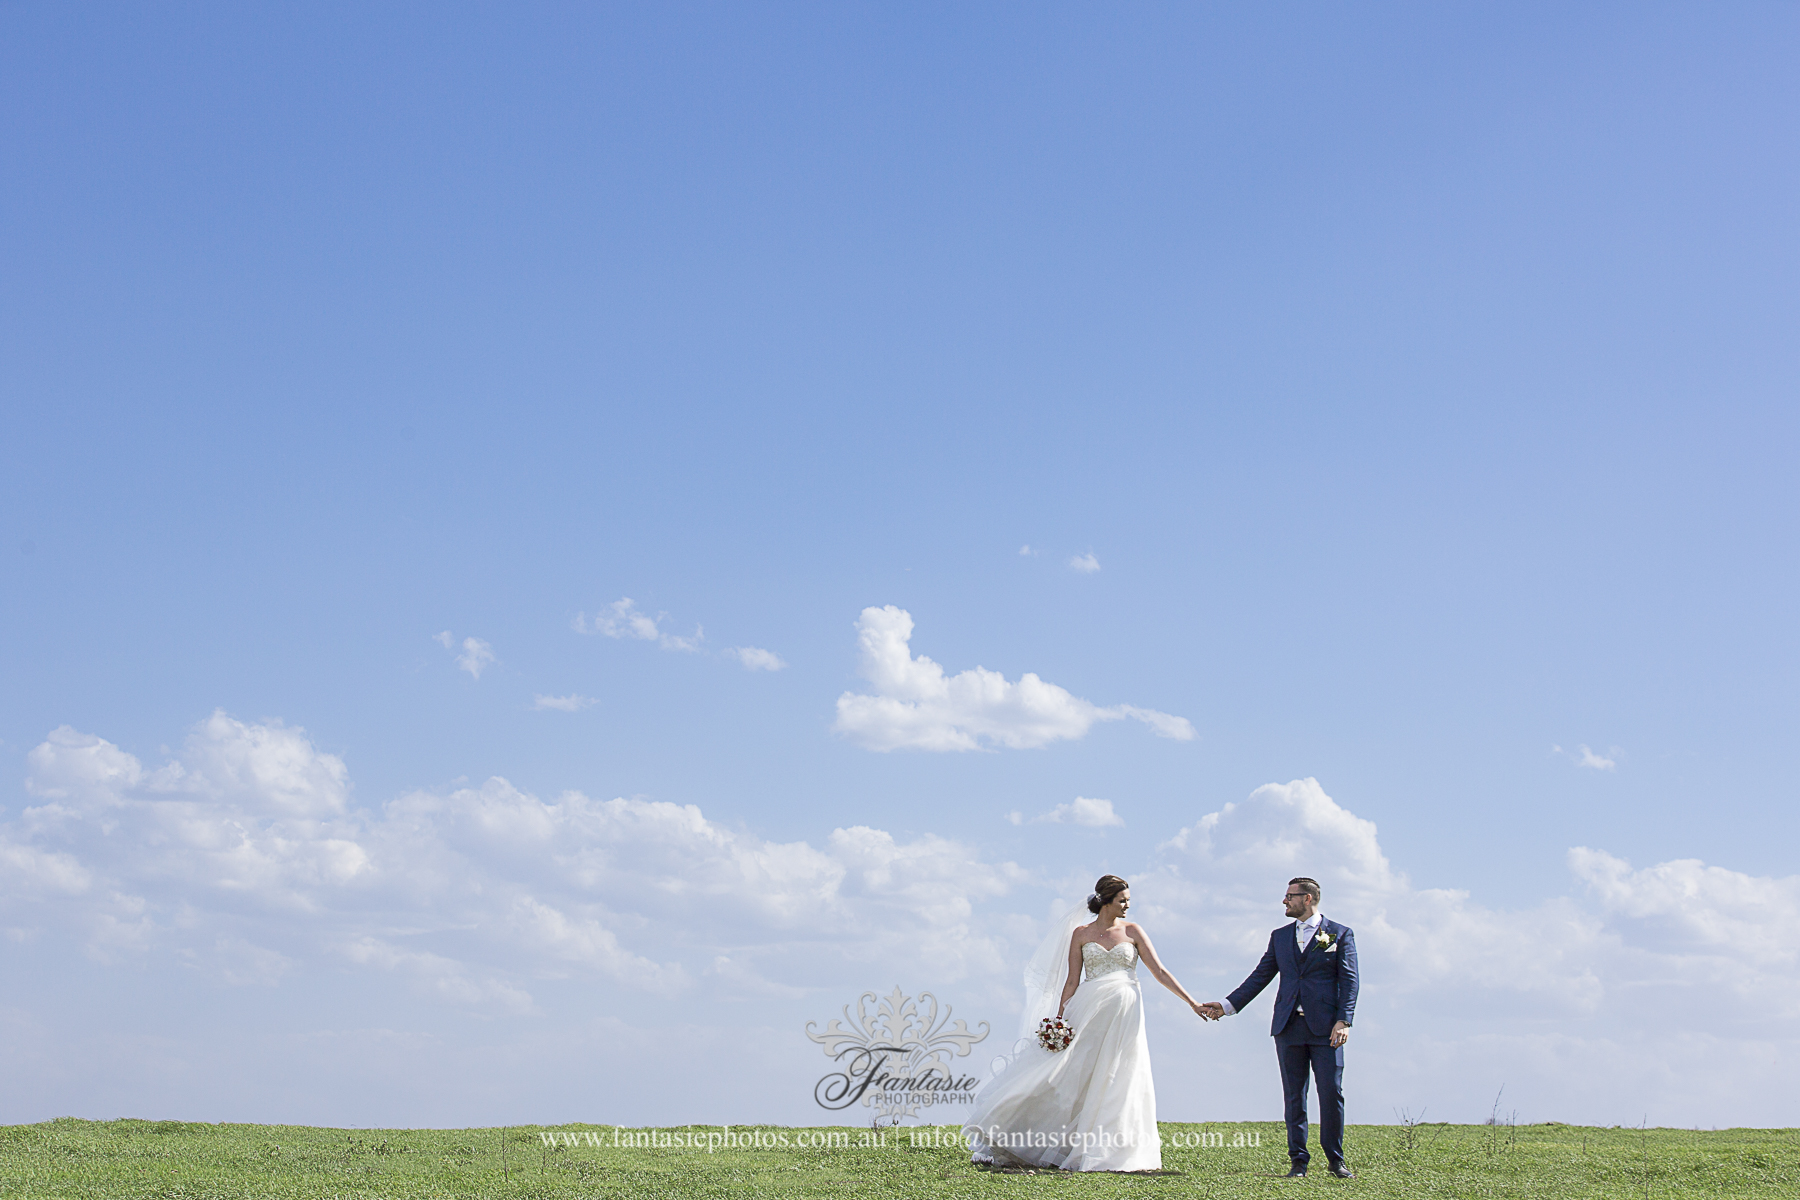 Wedding Photography at Ottimo House Campbelltown | Groom & Bride on the grass field | Fantasie Photography